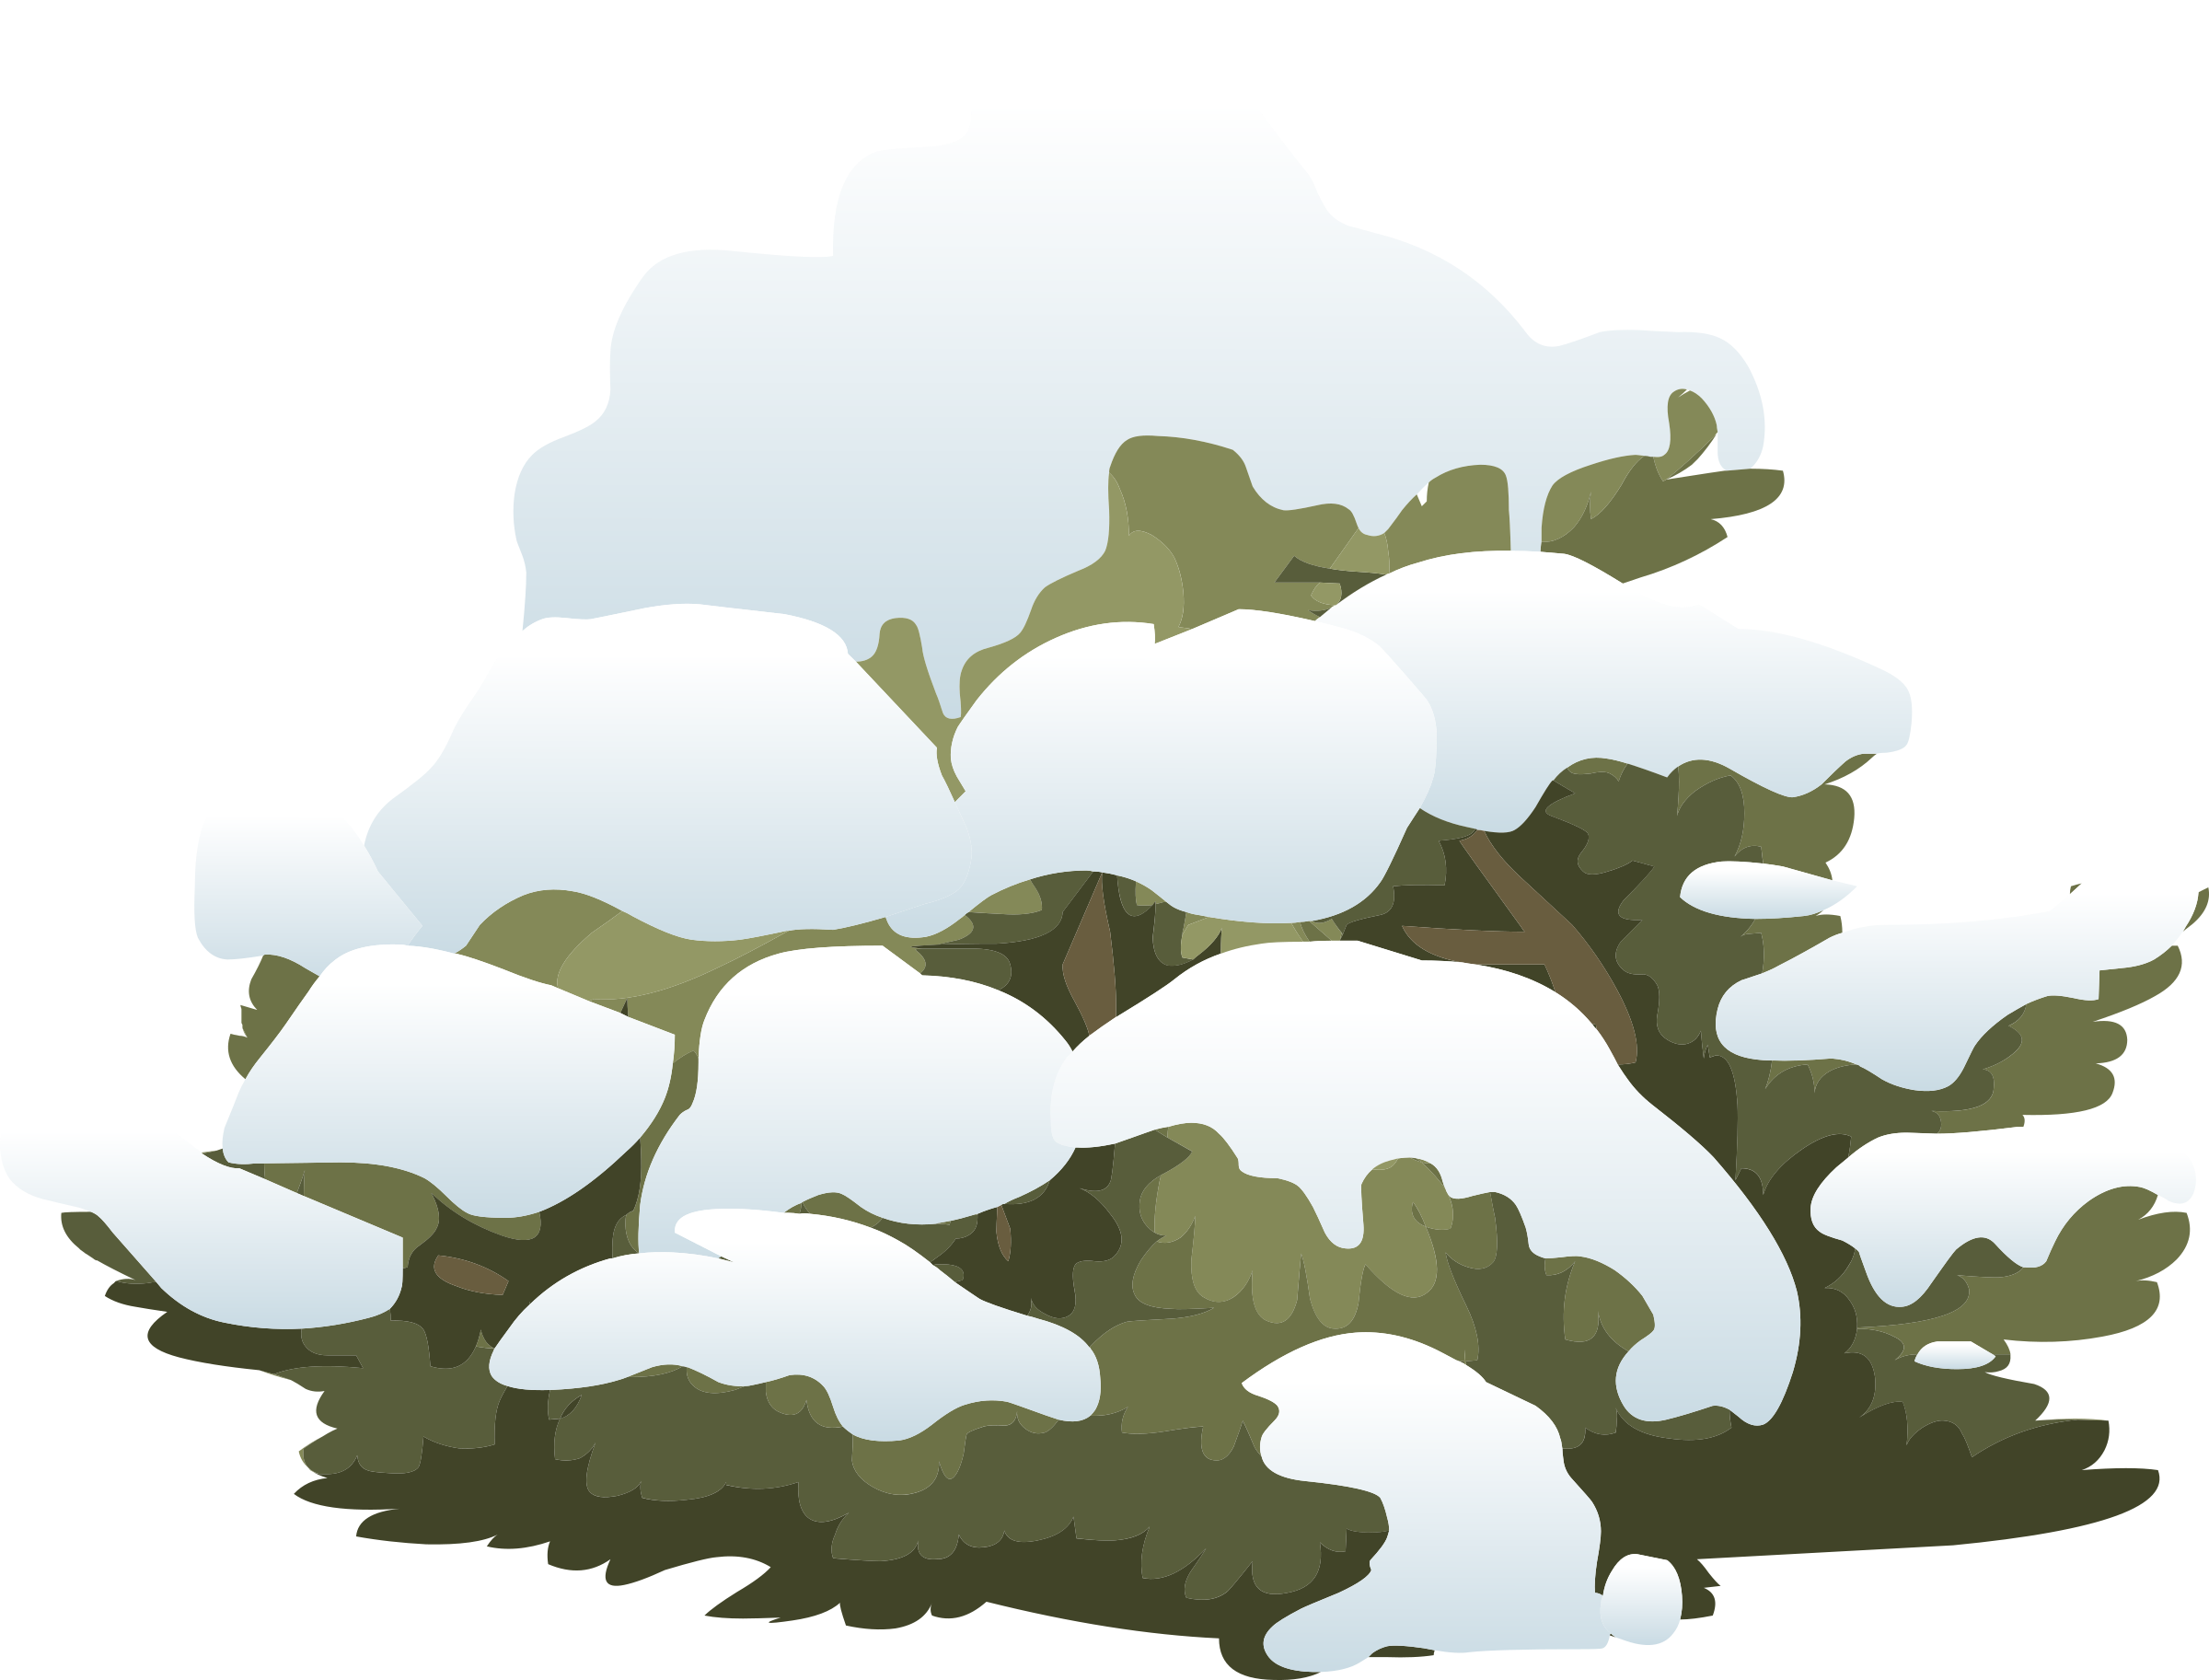 Alpine Landscape Snow Bush 01b Al1 by glitch